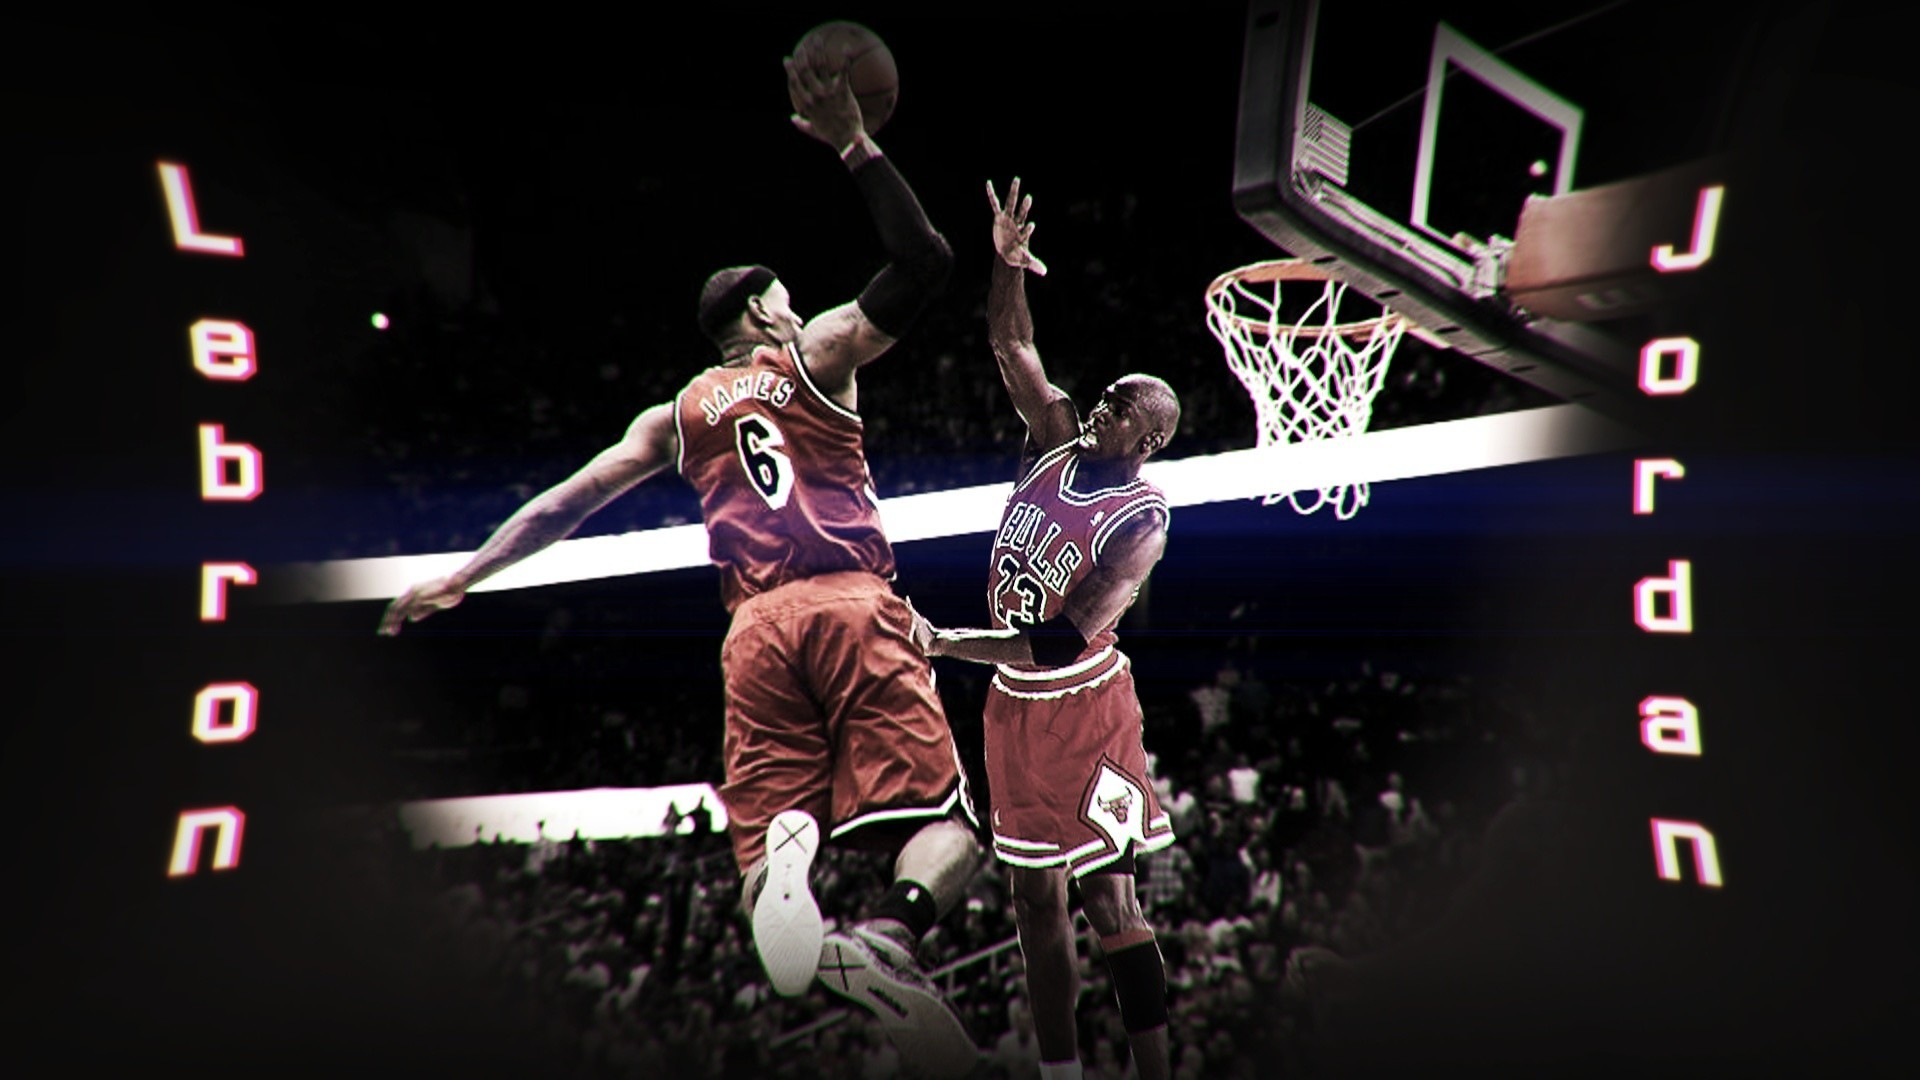 1920x1080 Lebron James Dunk Wallpapers Photo On High Resolution Wallpaper